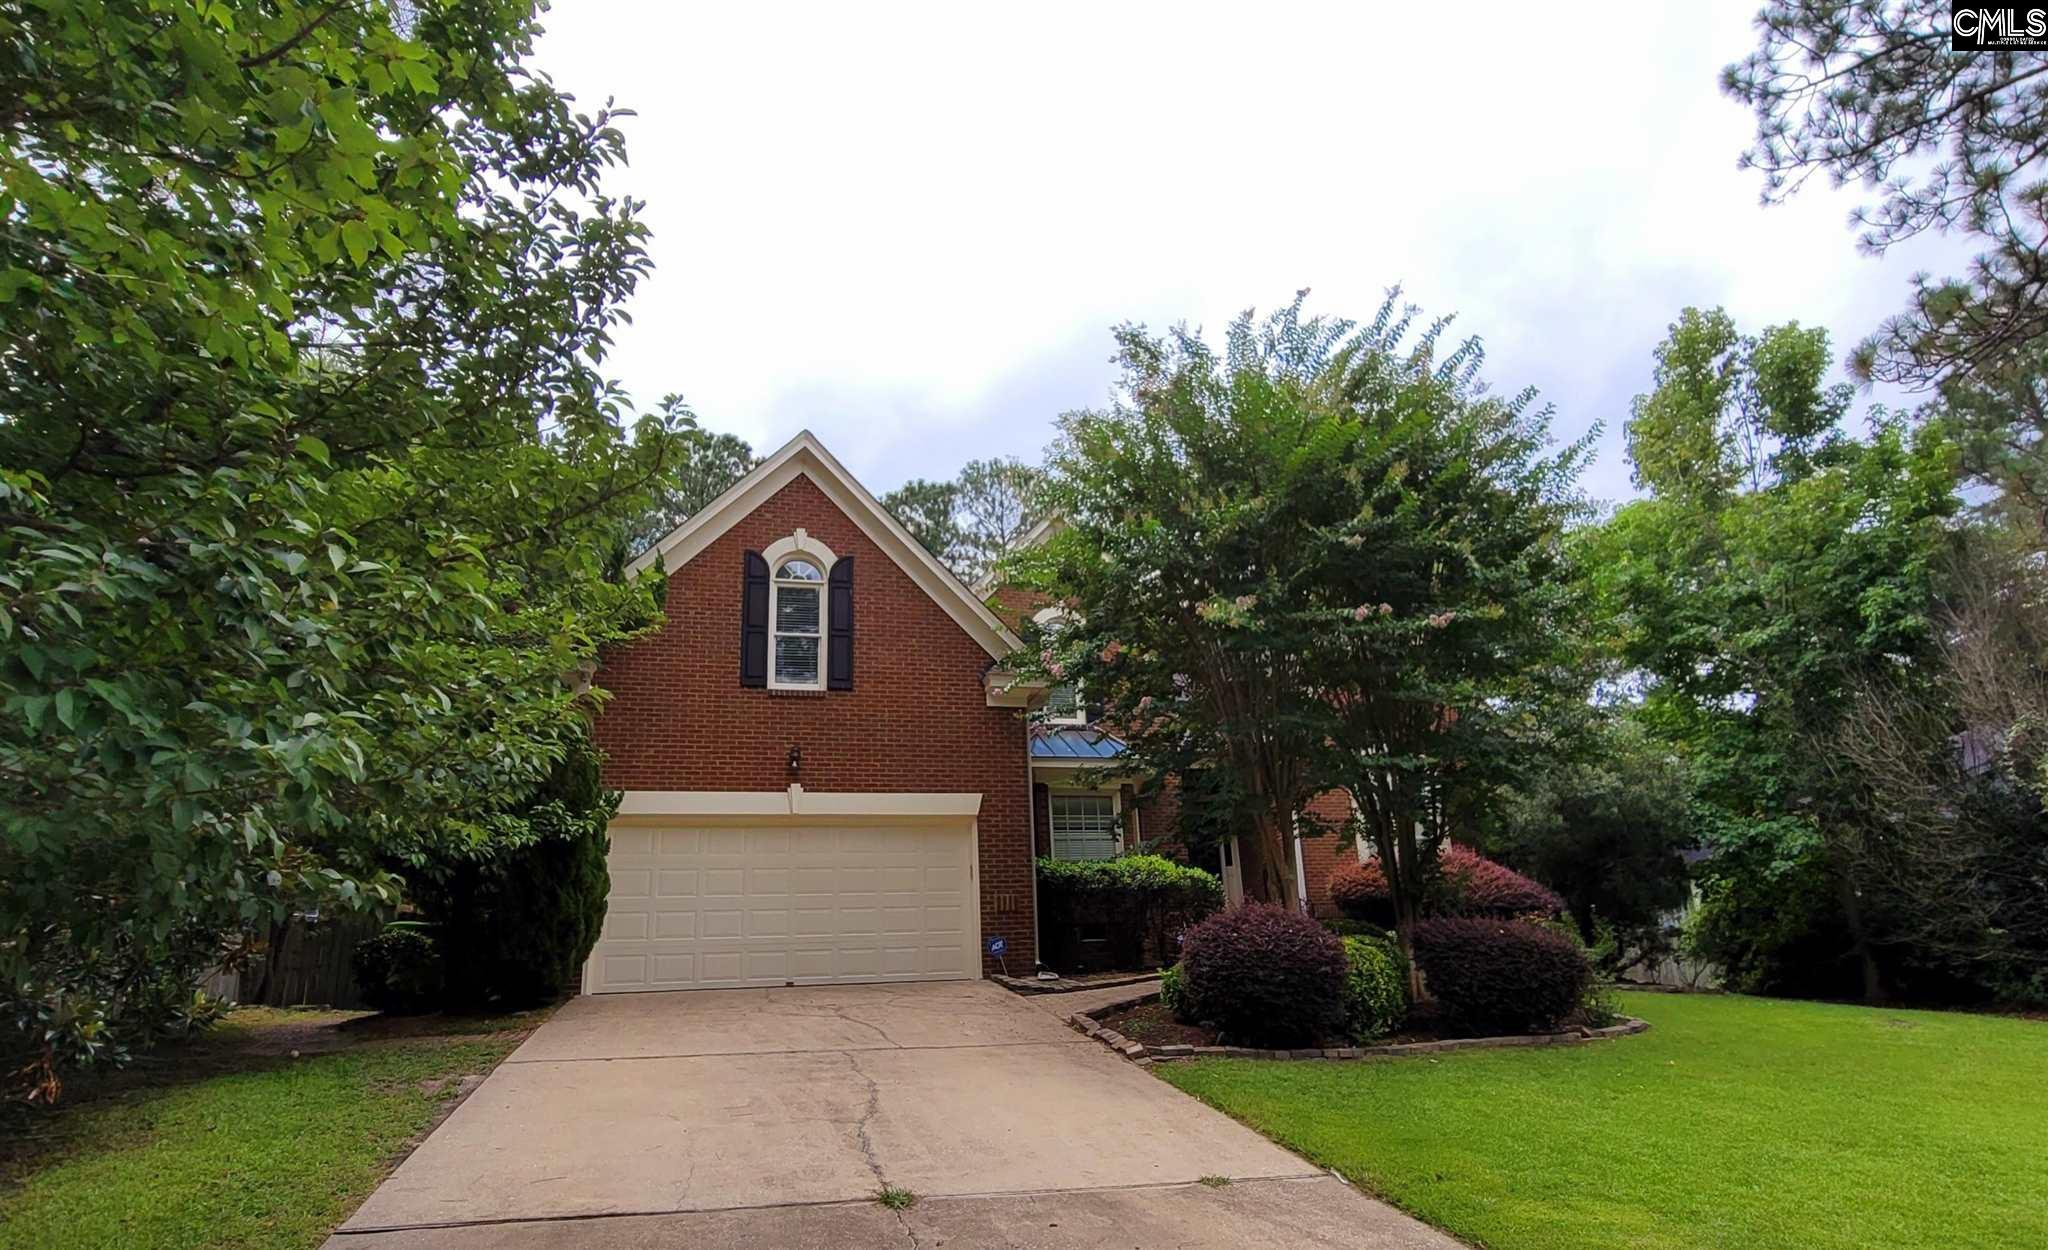 Wildewood Home For Sale in Columbia SC